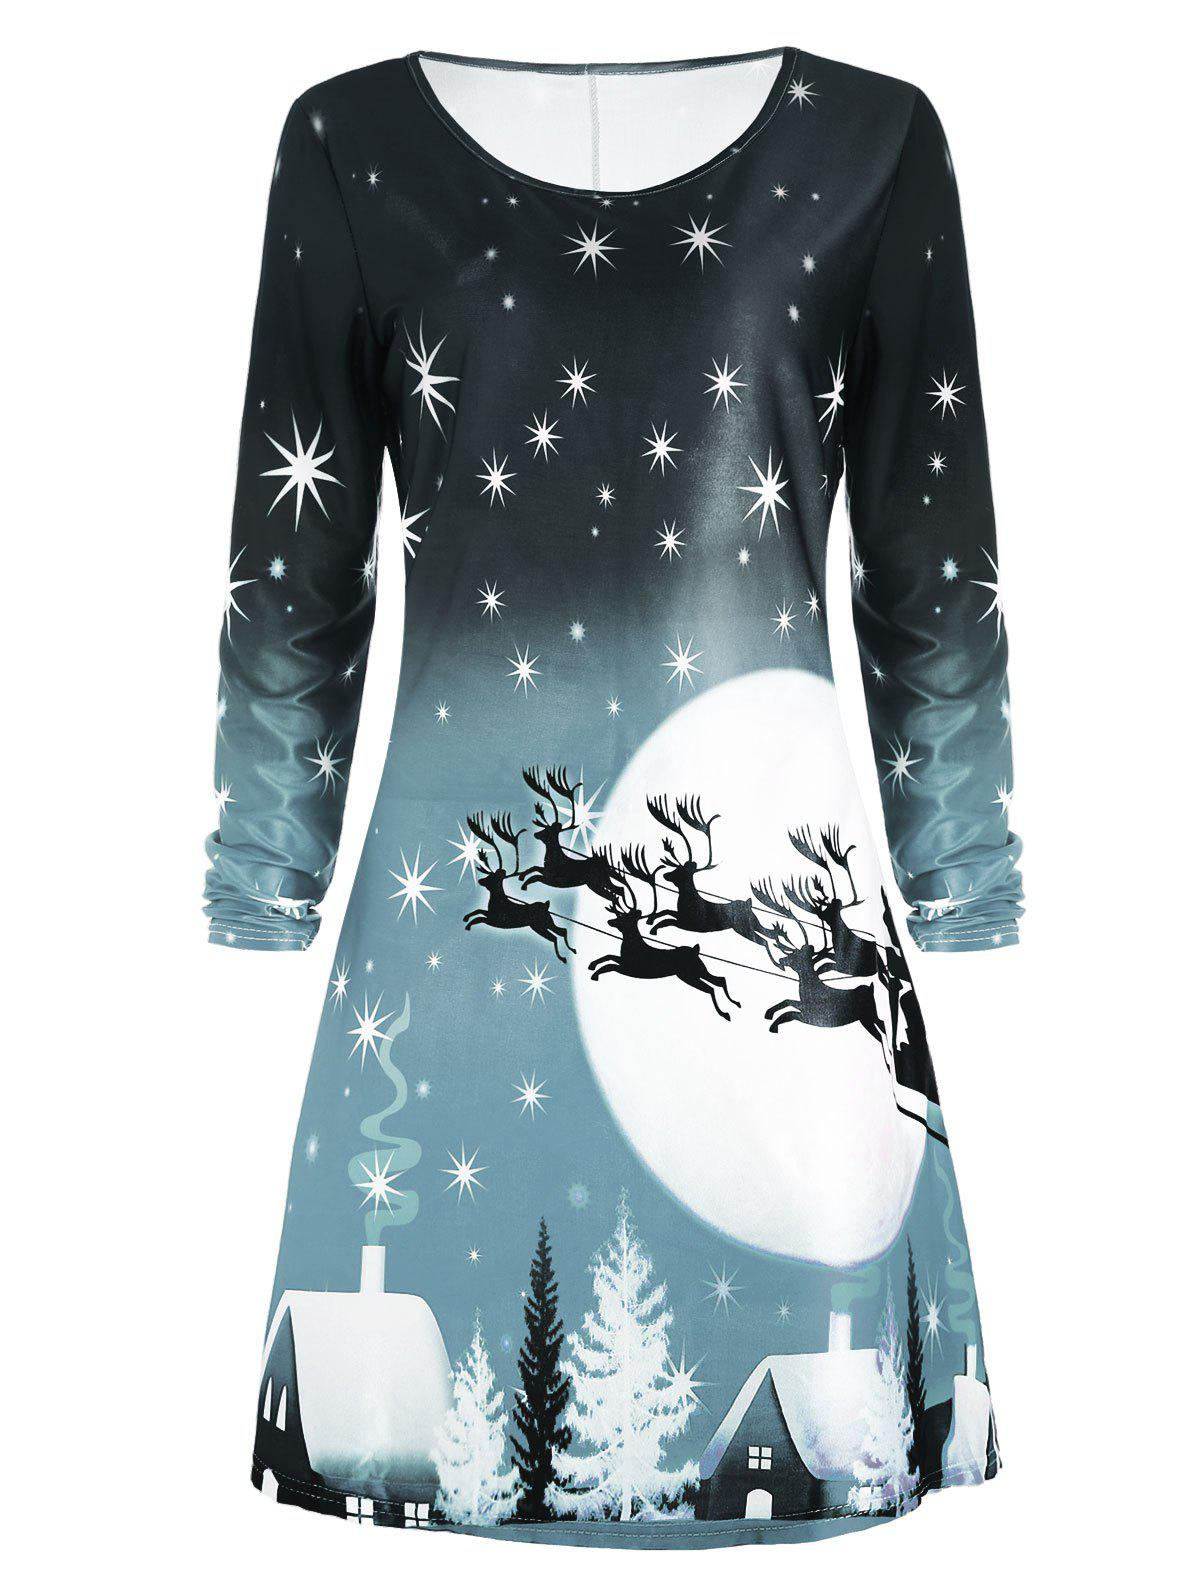 Christmas Deer Long Sleeve Tee Skater DressWOMEN<br><br>Size: 2XL; Color: SAGE GREEN; Style: Casual; Material: Polyester; Silhouette: A-Line; Dresses Length: Knee-Length; Neckline: Round Collar; Sleeve Length: Long Sleeves; Pattern Type: Animal,Character,Print,Star; With Belt: No; Season: Fall; Weight: 0.2300kg; Package Contents: 1 x Dress; Occasion: Casual;